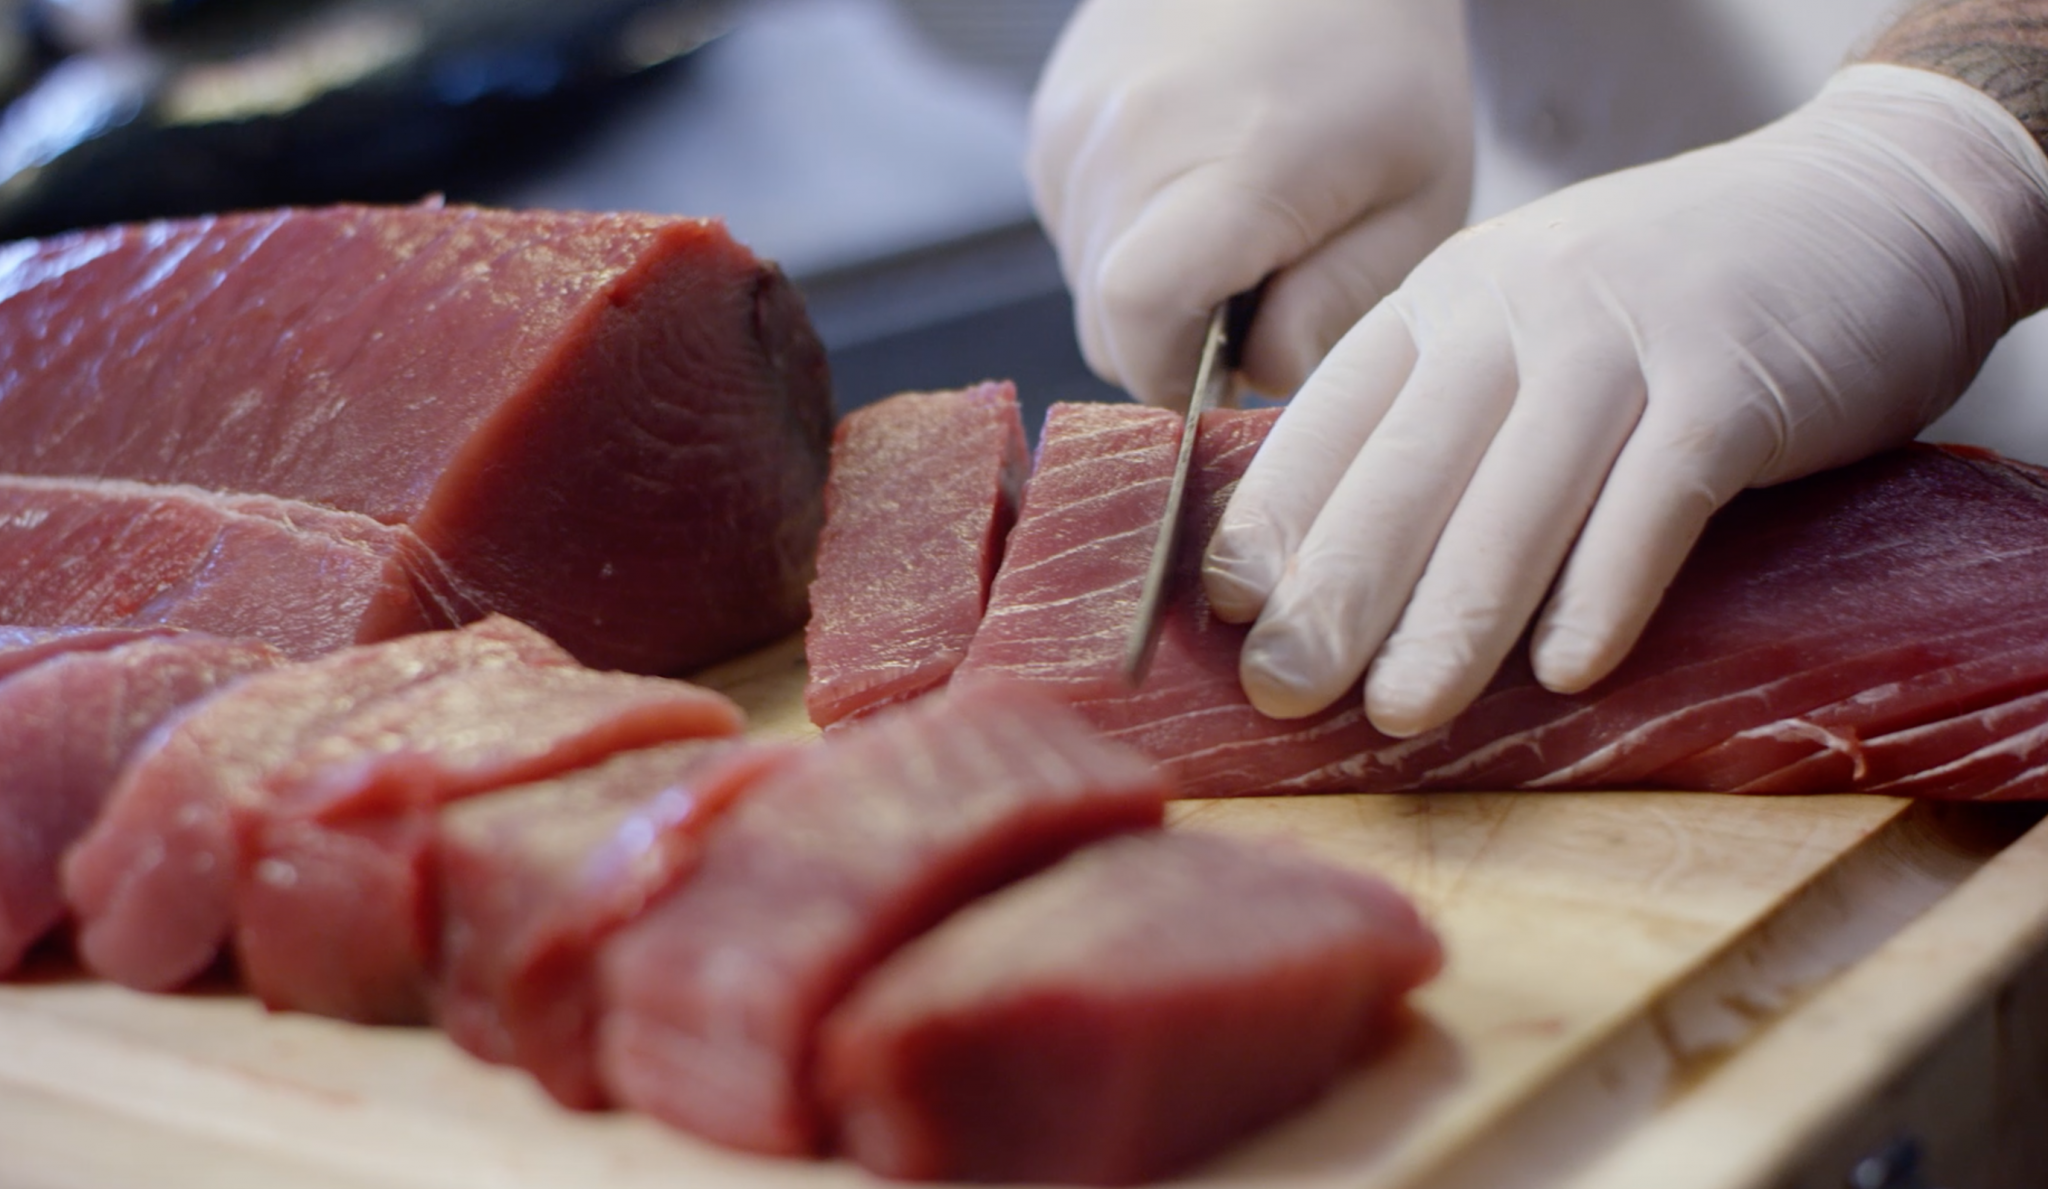 picture of Chef cutting fresh ahi tuna on a cutting board with gloved hands.